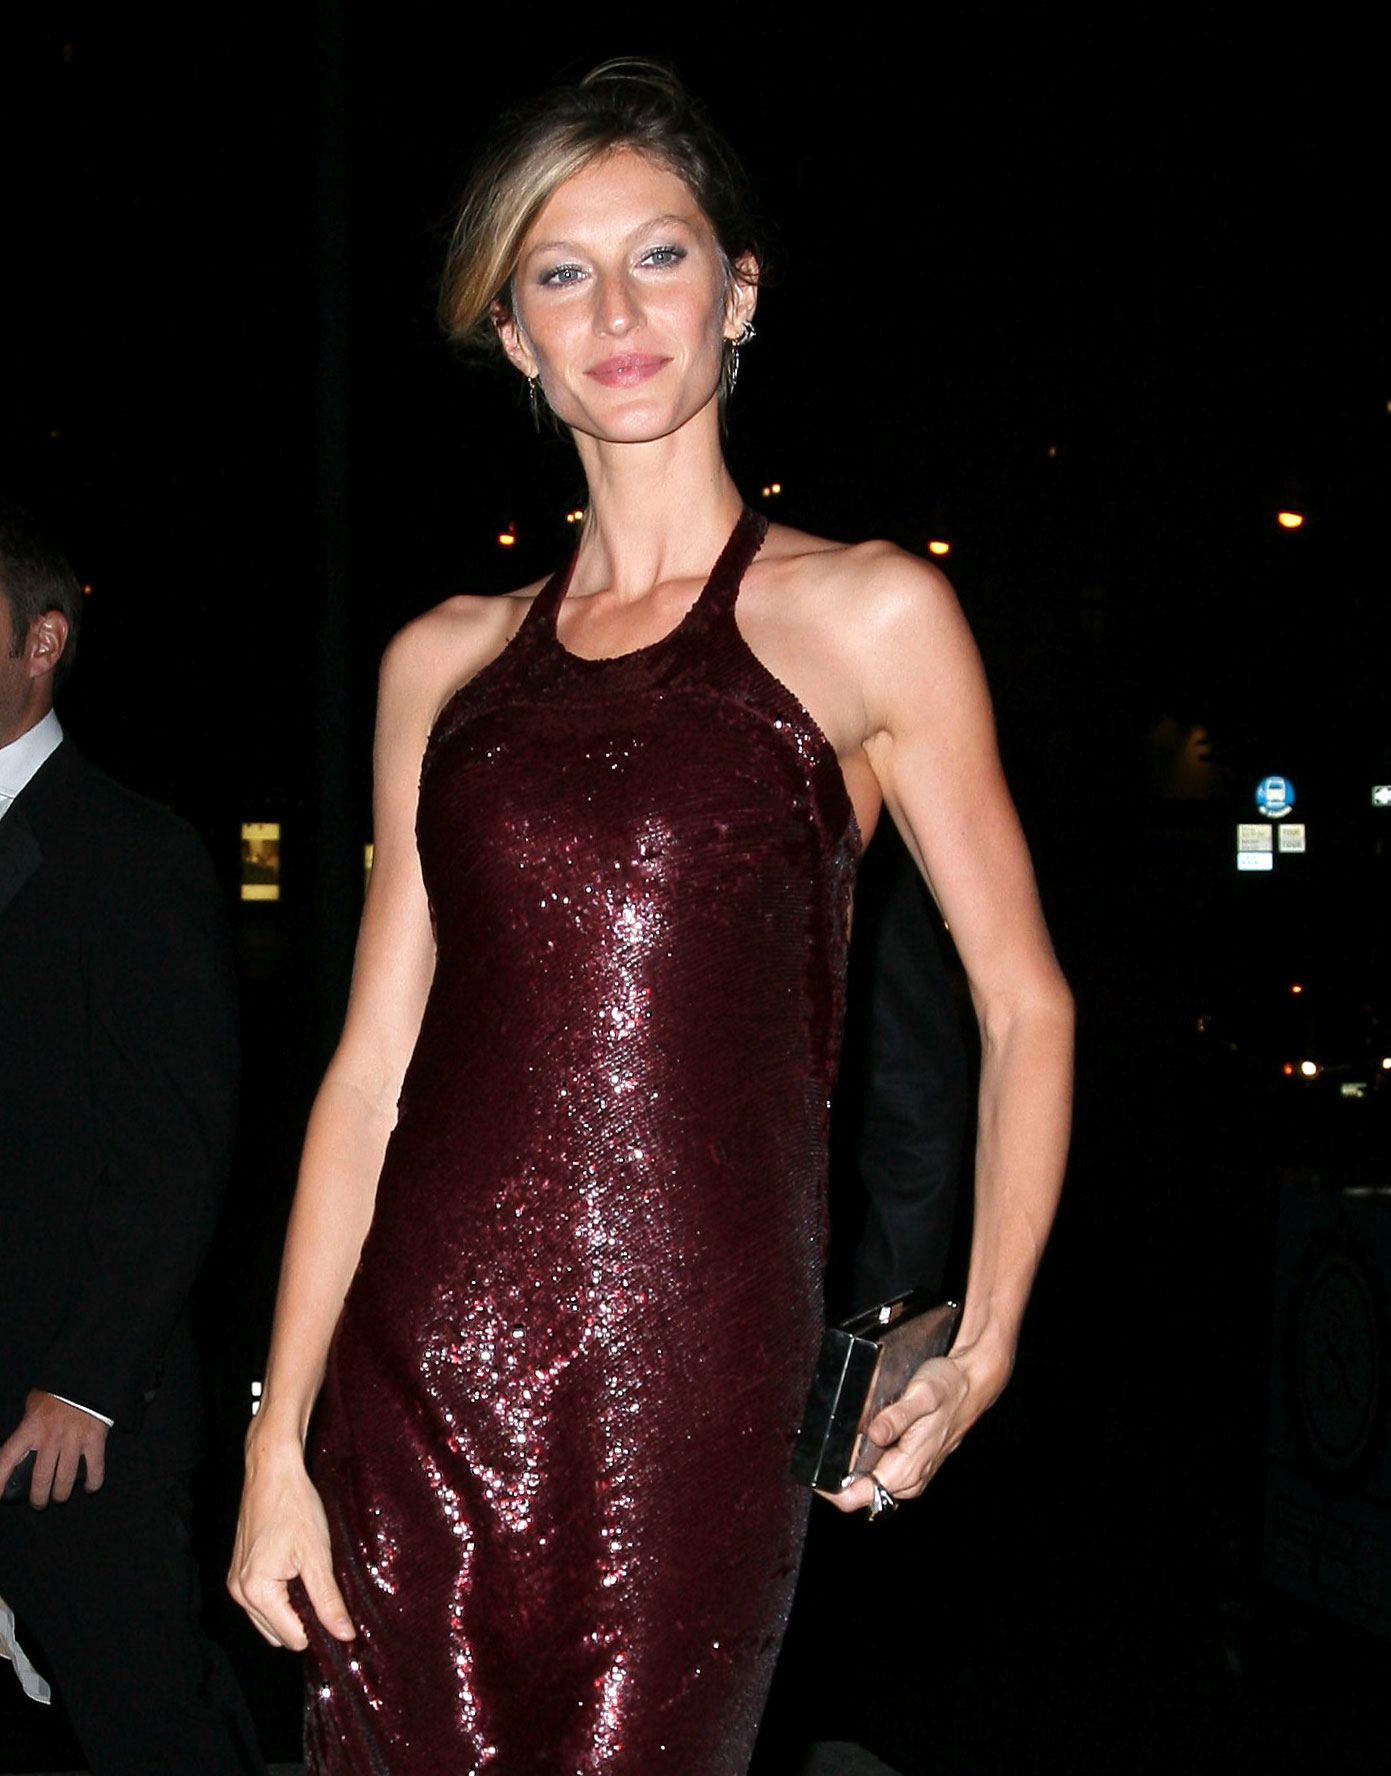 Pictures of Gisele Bundchen in a Long Red Dress Going to a ...